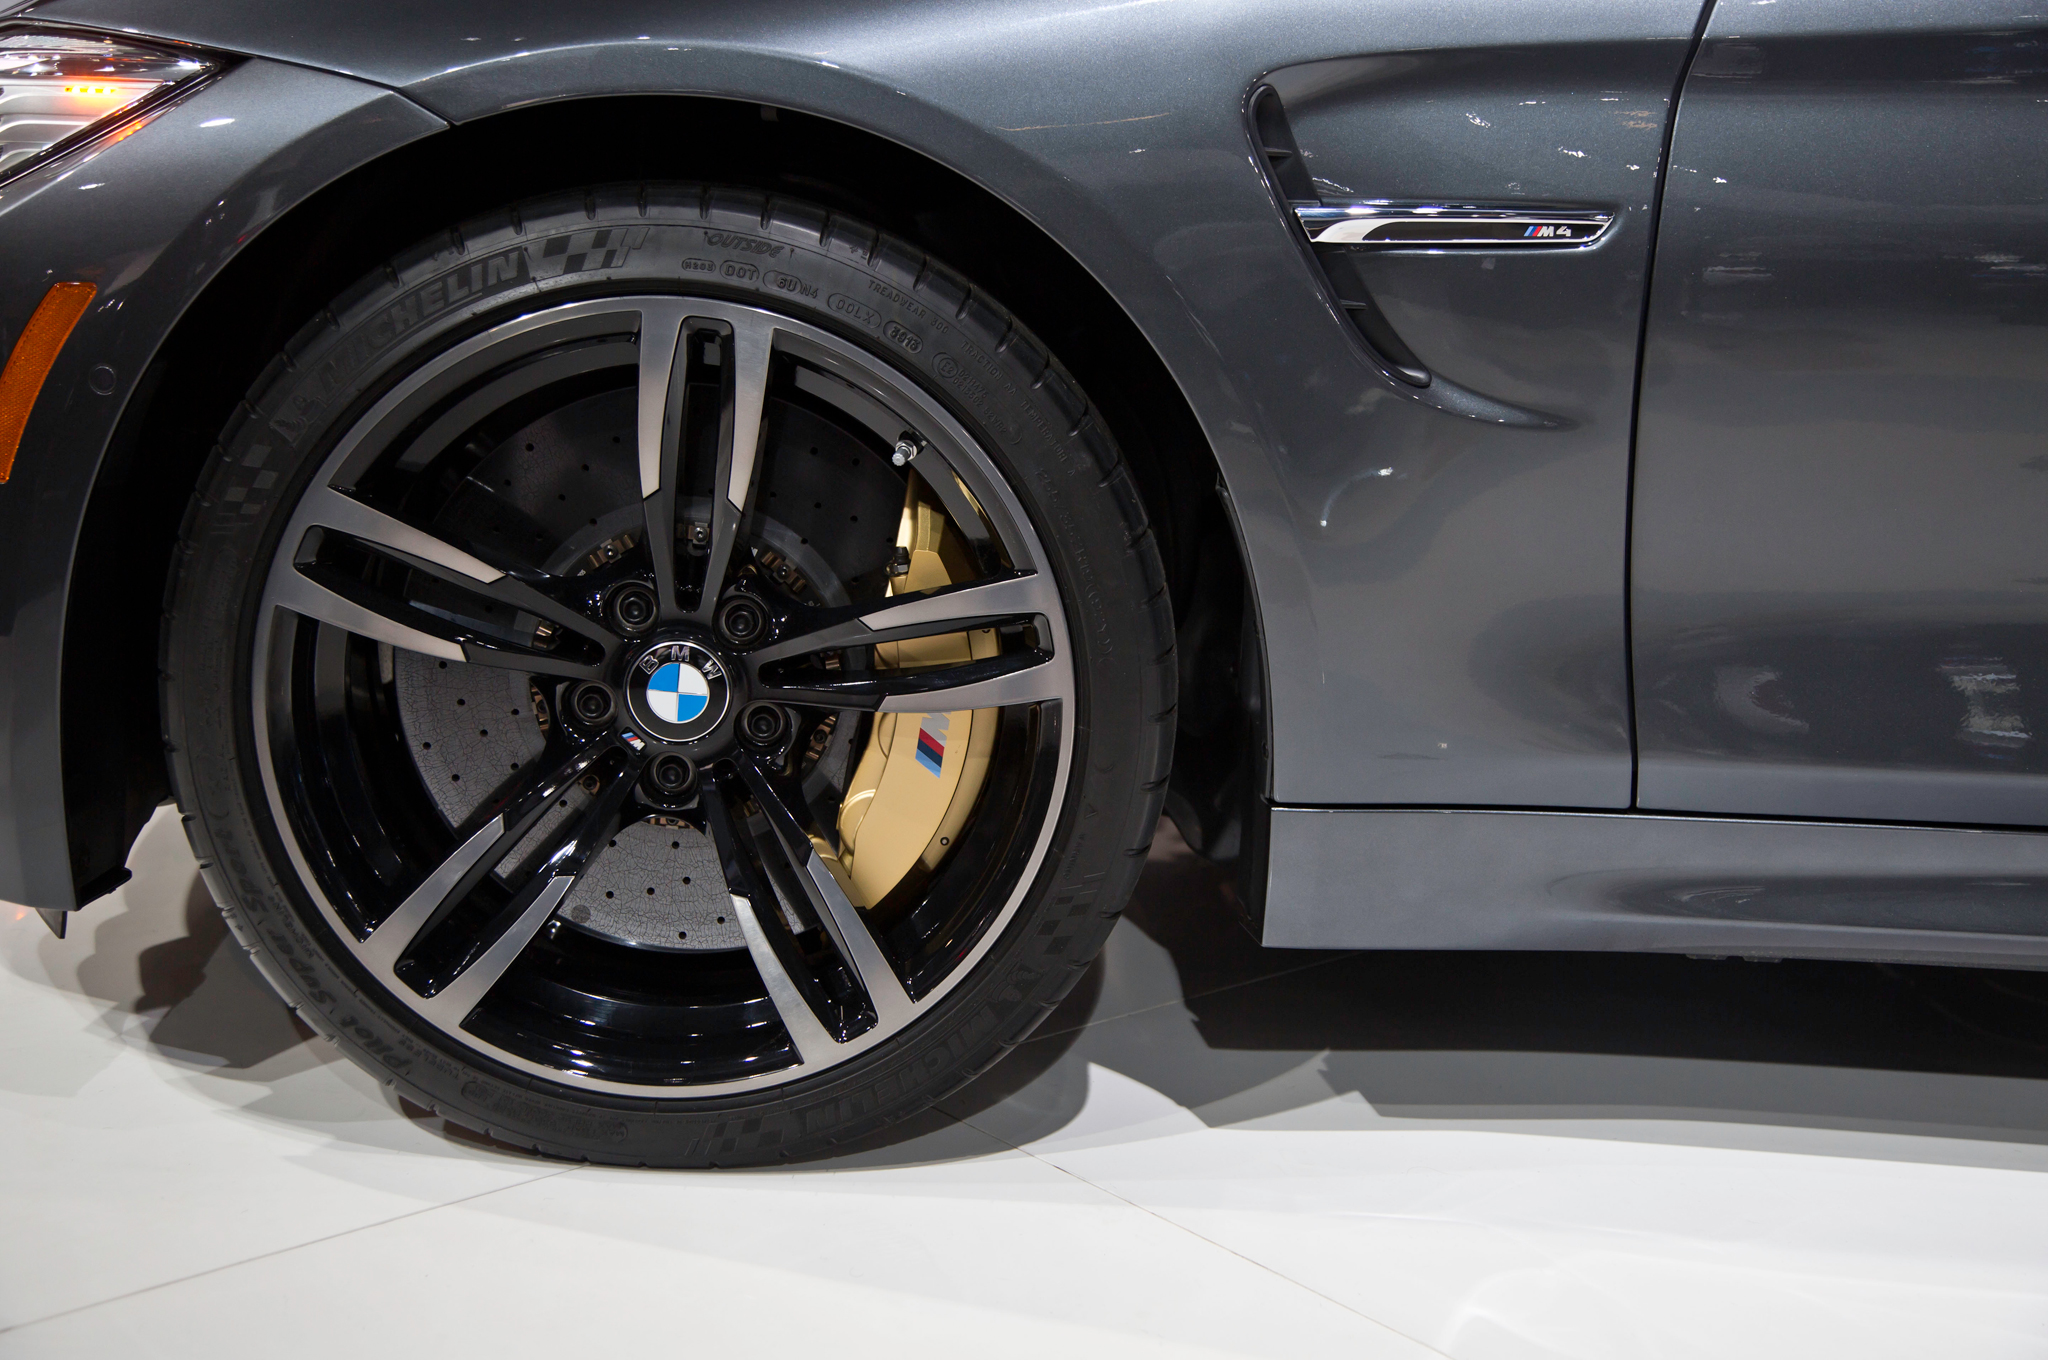 2015 Bmw M4 Convertible Wheels Details (Photo 50 of 50)